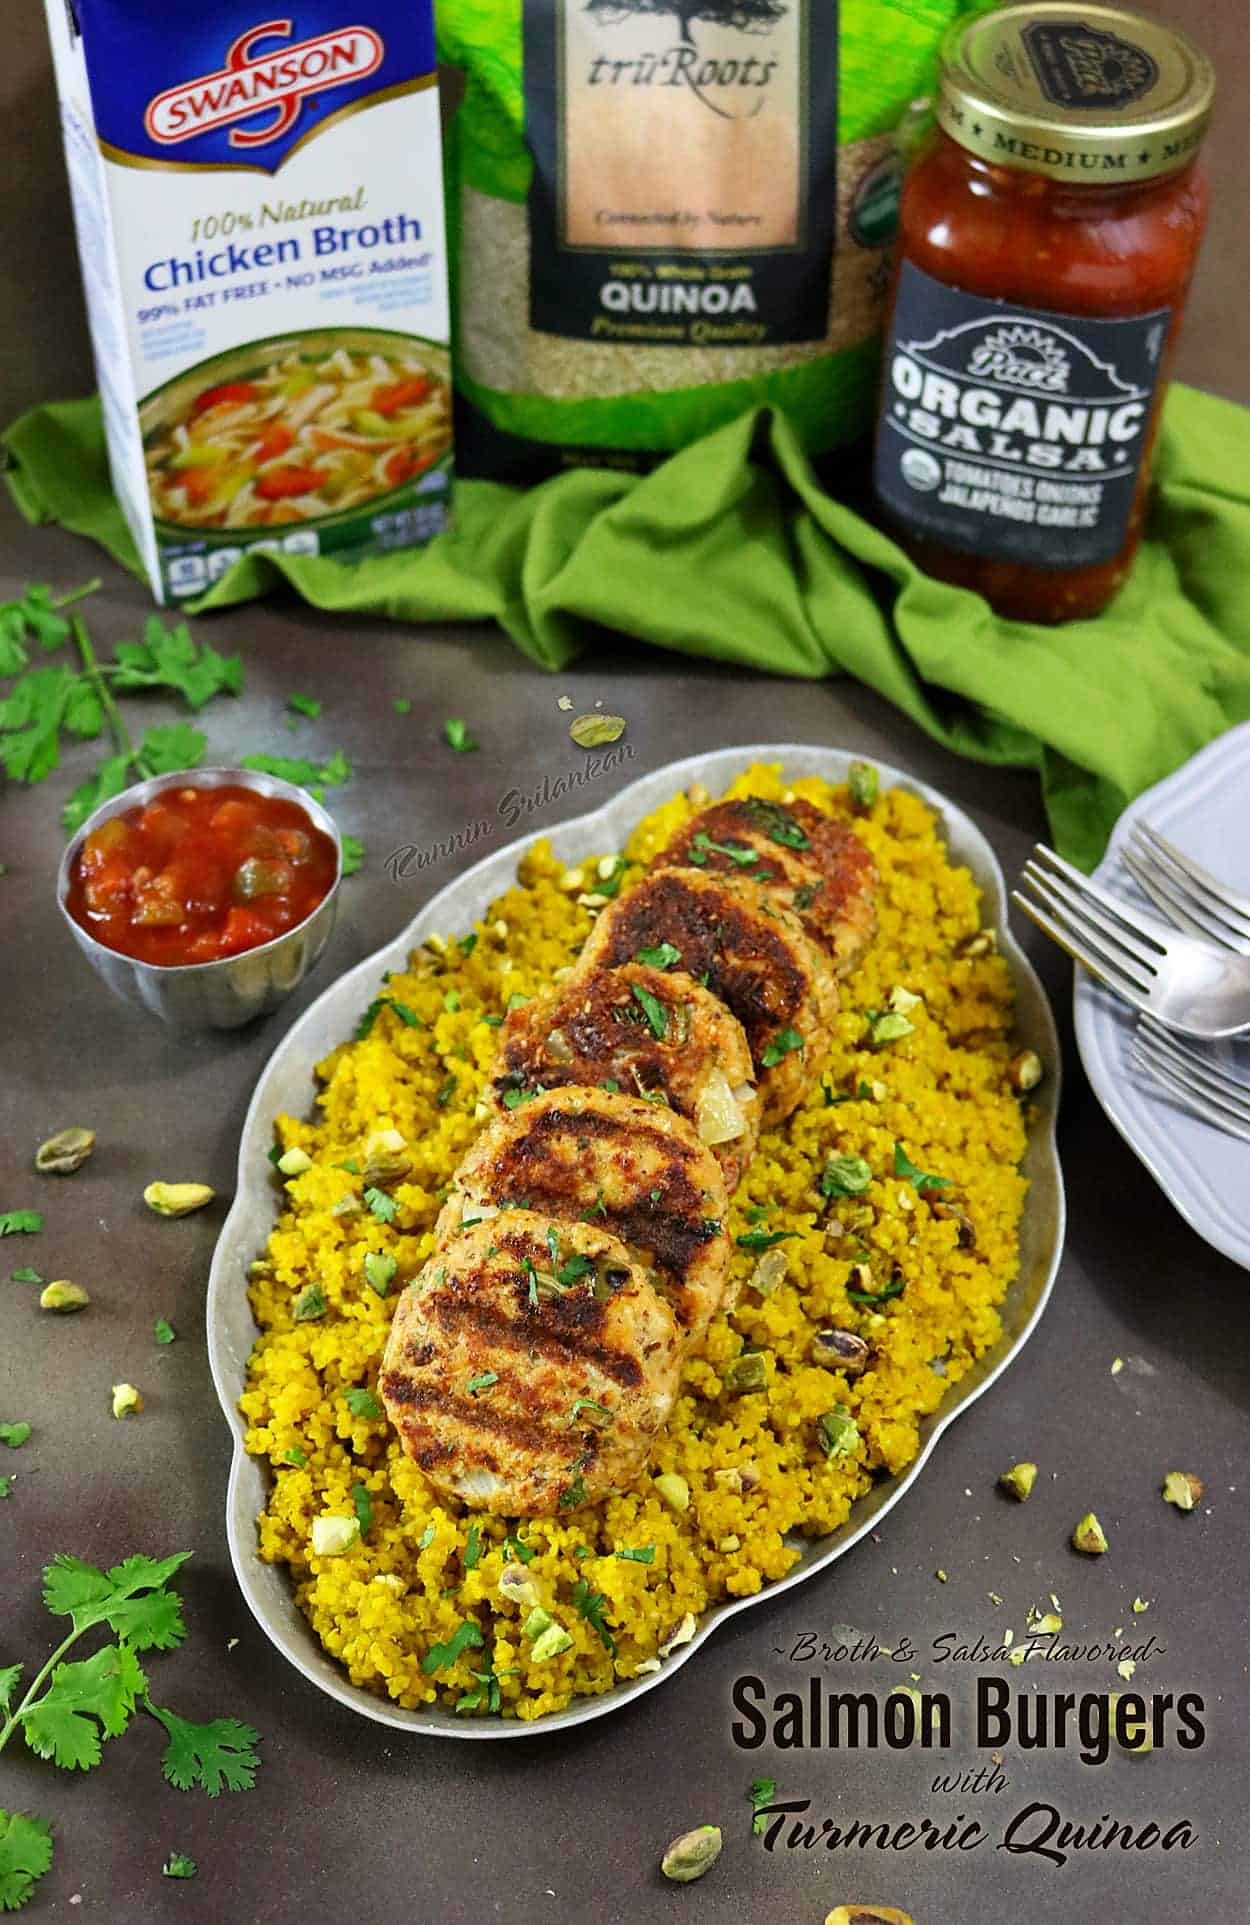 Broth & Salsa Flavored Salmon Burgers with Turmeric Quinoa #BlockPartyHero #ad